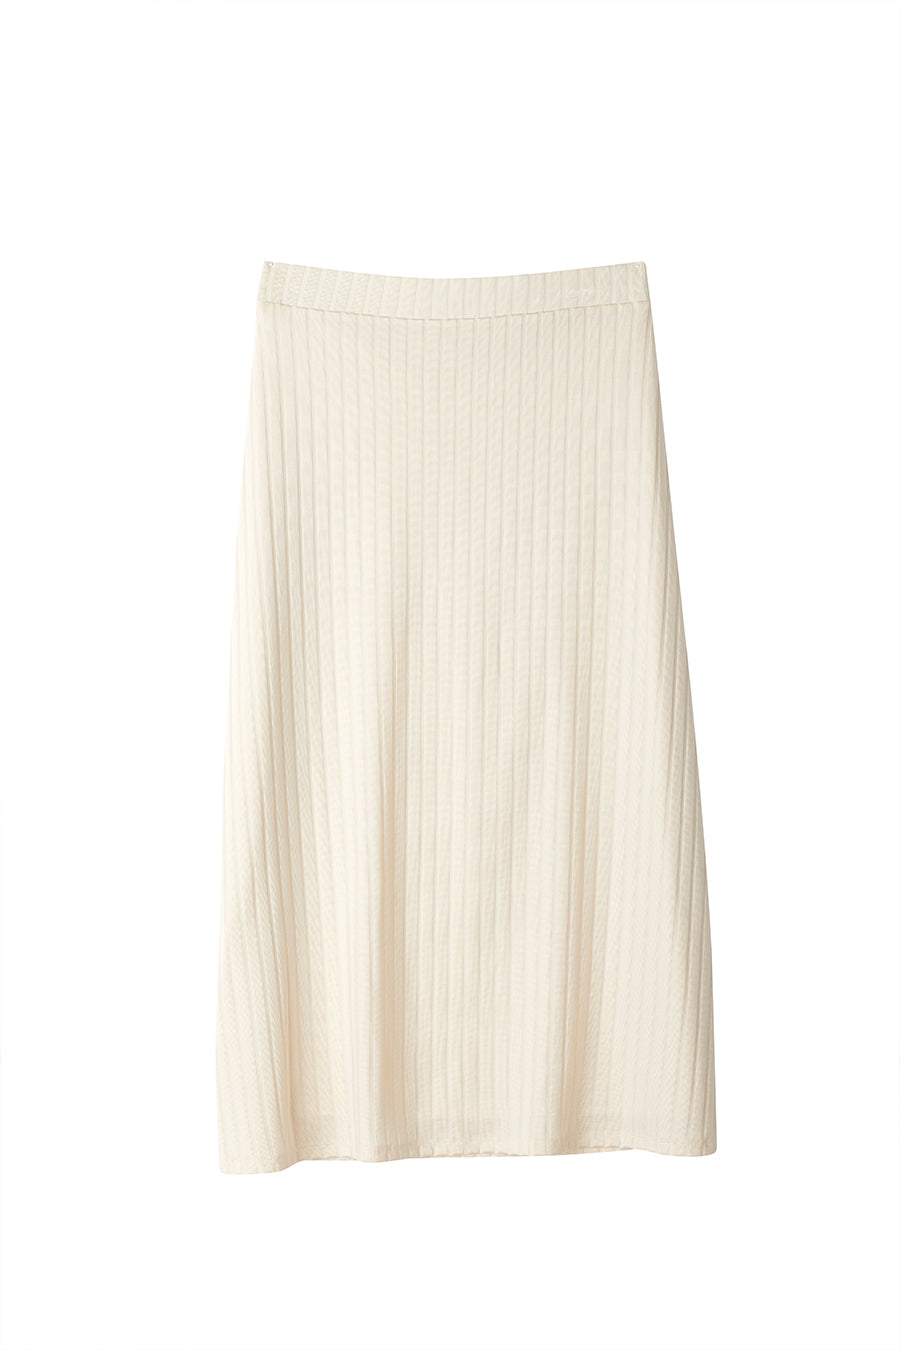 PHILLY SKIRT - CREAM